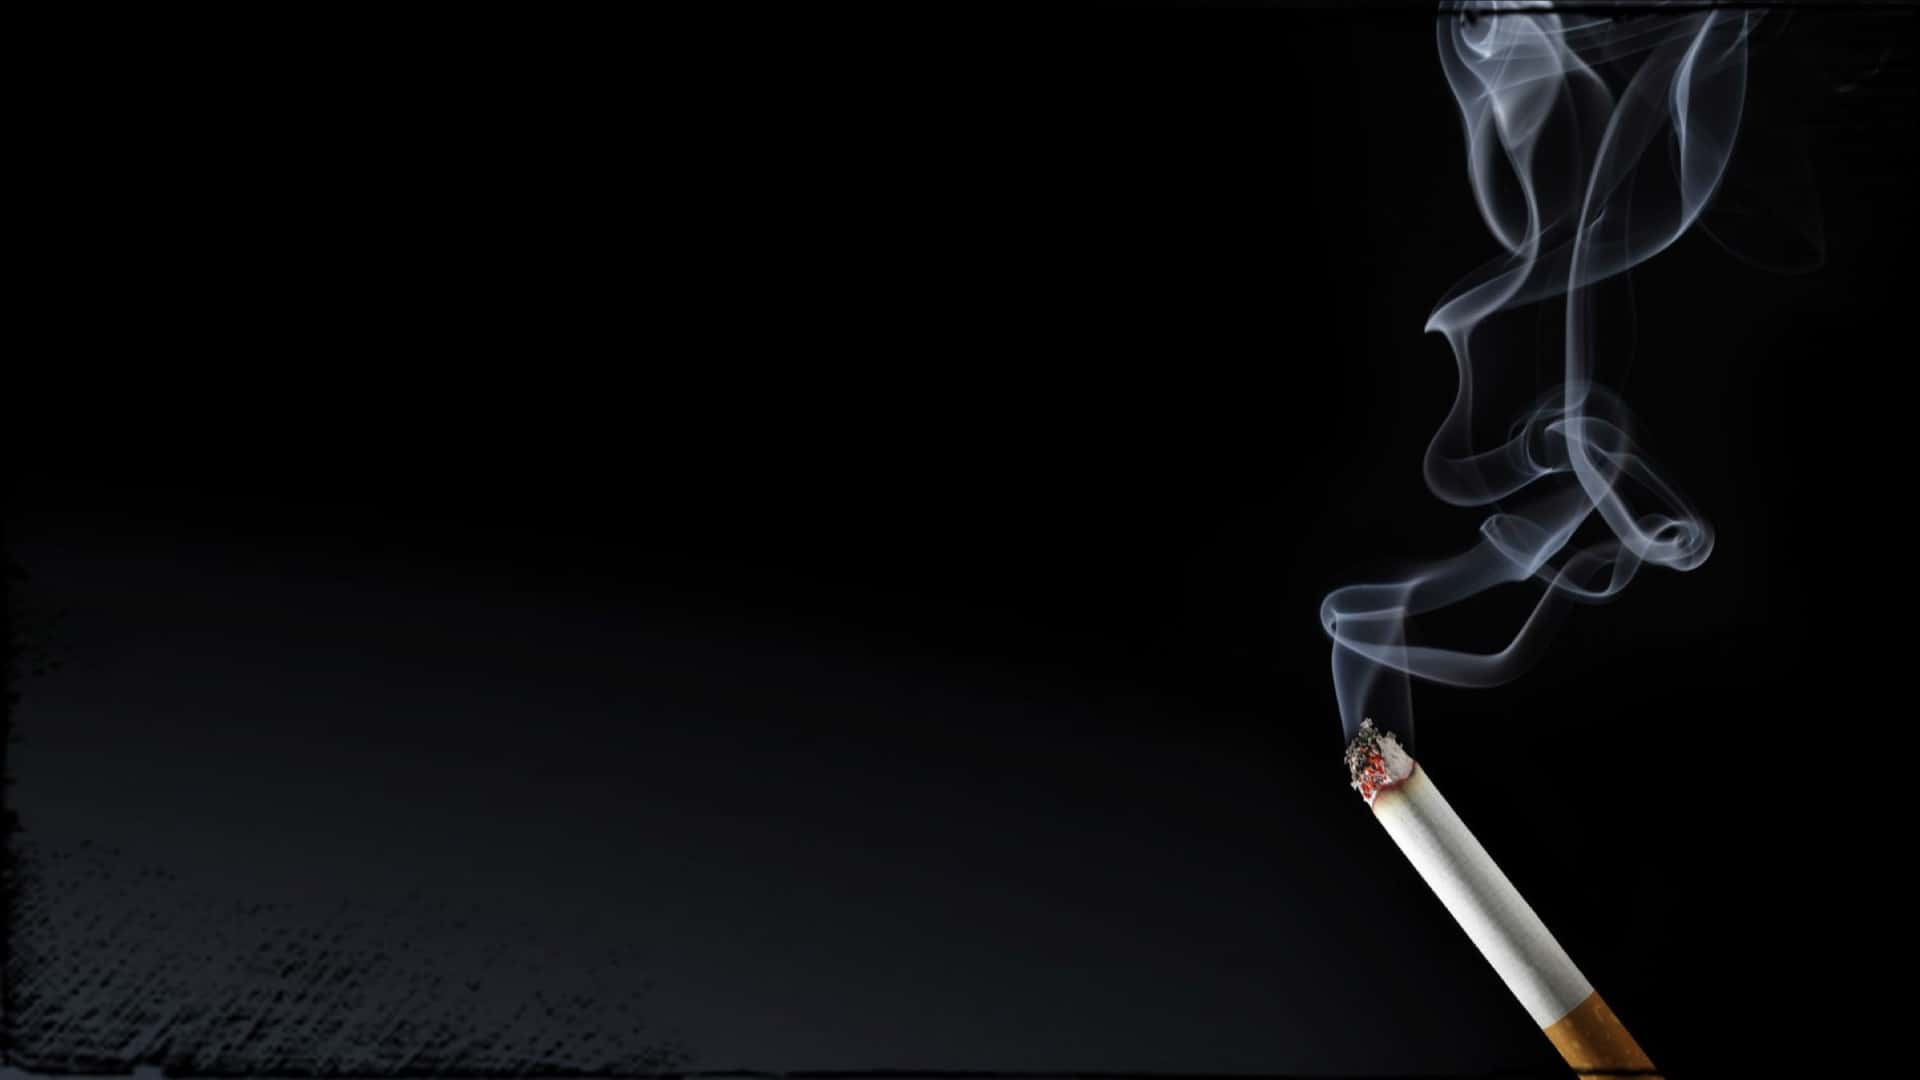 A lit cigarette with a trail of smoke rising into the air against a black background.